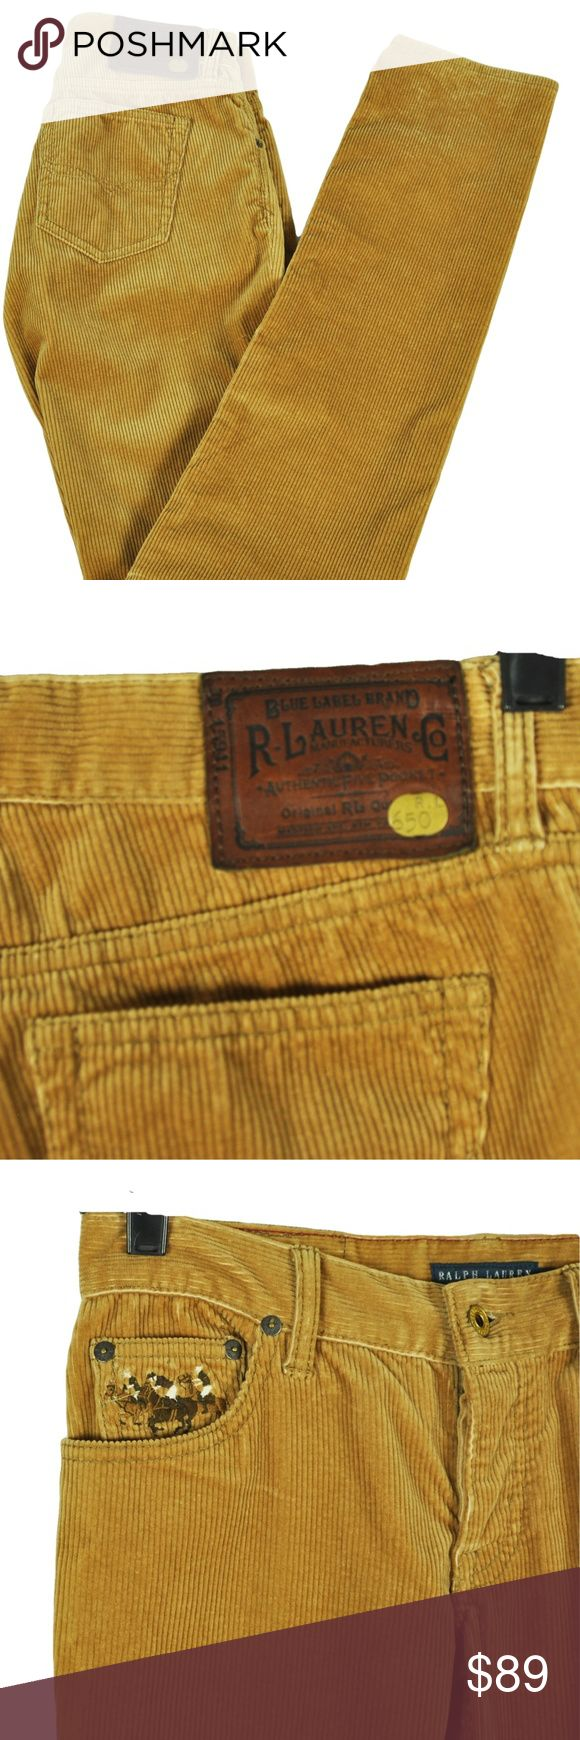 "RALPH LAUREN 27 Thompson 650 Skinny Leg Corduroy RALPH LAUREN Thompson 650 Corduroy Pants, Size 27 New with tags MSRP: $245.00 ""Thompson 650"" Brand: Ralph Lauren Color: Tan Material: 99% Cotton, 1% Elastane Button fly 5 Pocket Skinny leg Polo horses on right front pocket Measurements: taken flat and across Inseam: 33.5"", Waist: 14"", Rise: 7"" Inventory # 124 No Trades Ralph Lauren Pants Skinny"